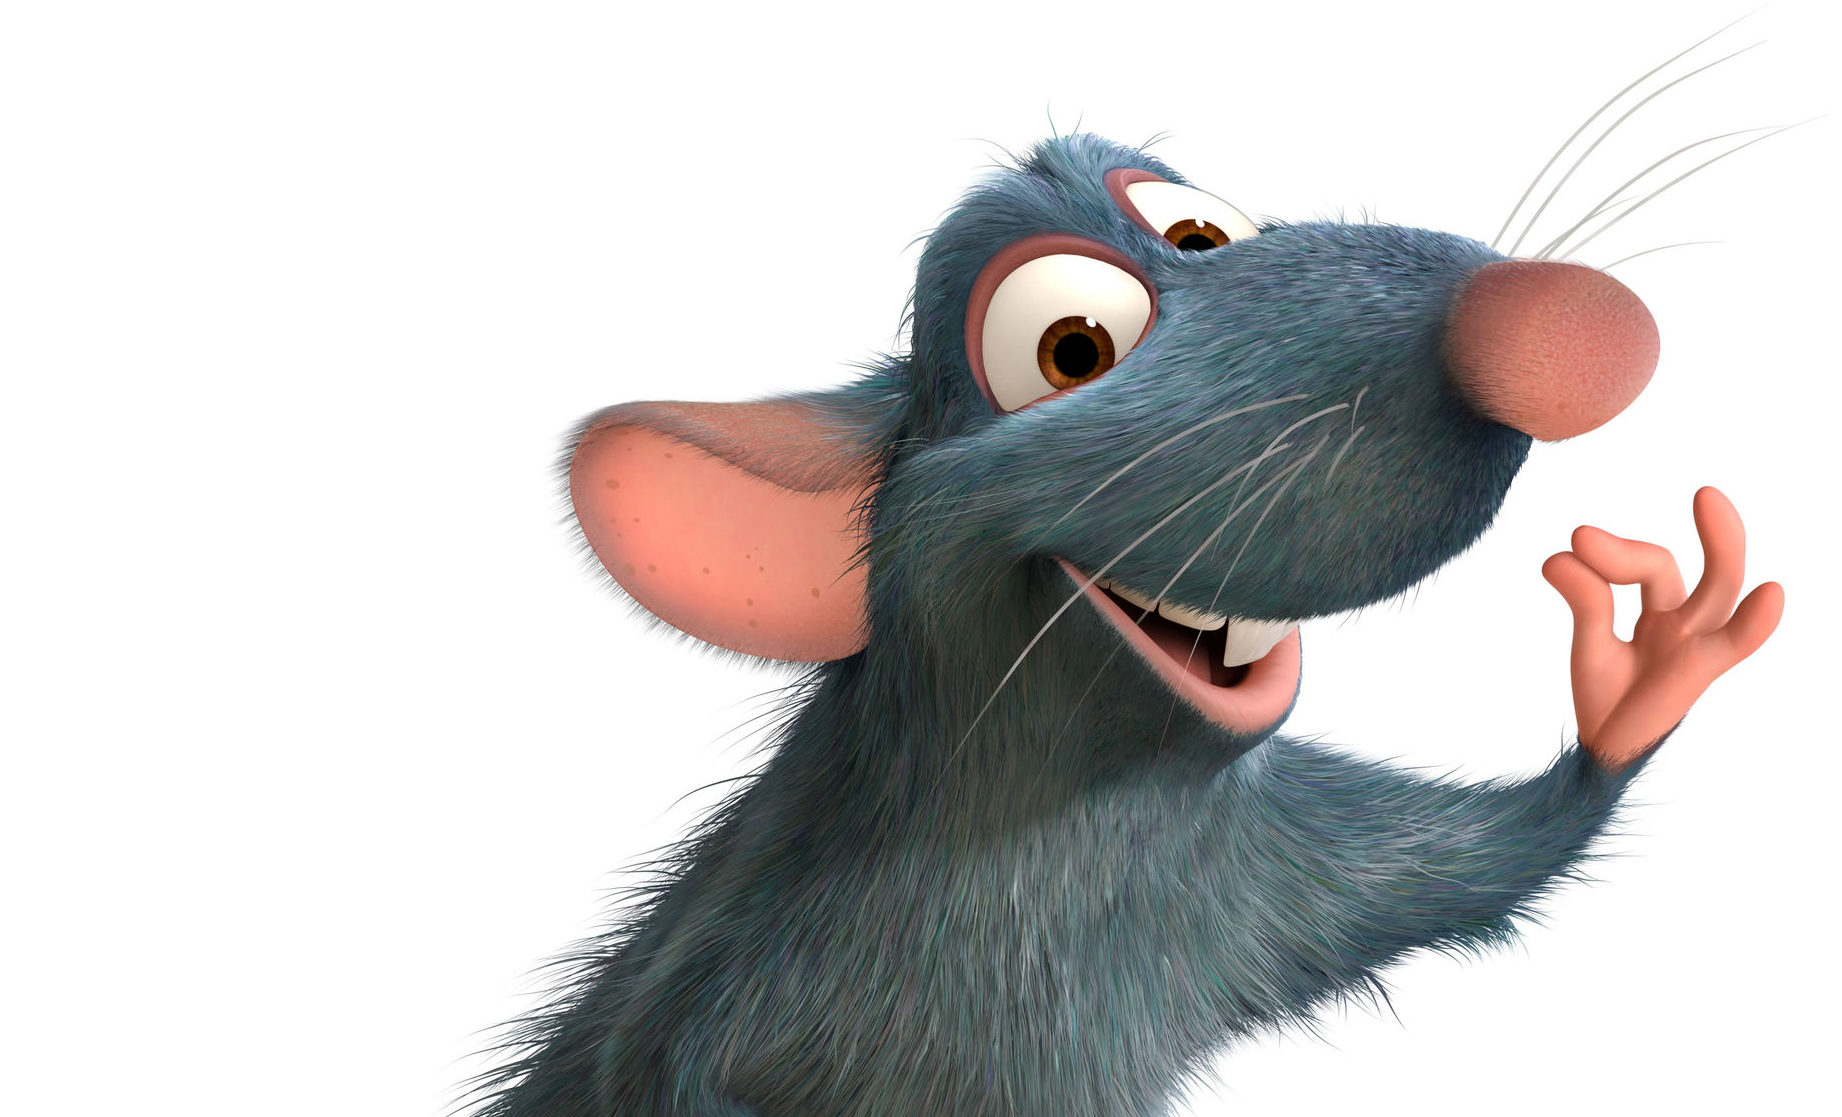 Remy the rat from Disney's Ratatouille is an unlikely Brexiteer but has whiskers in common with hardliners, says Donald MacLeod.